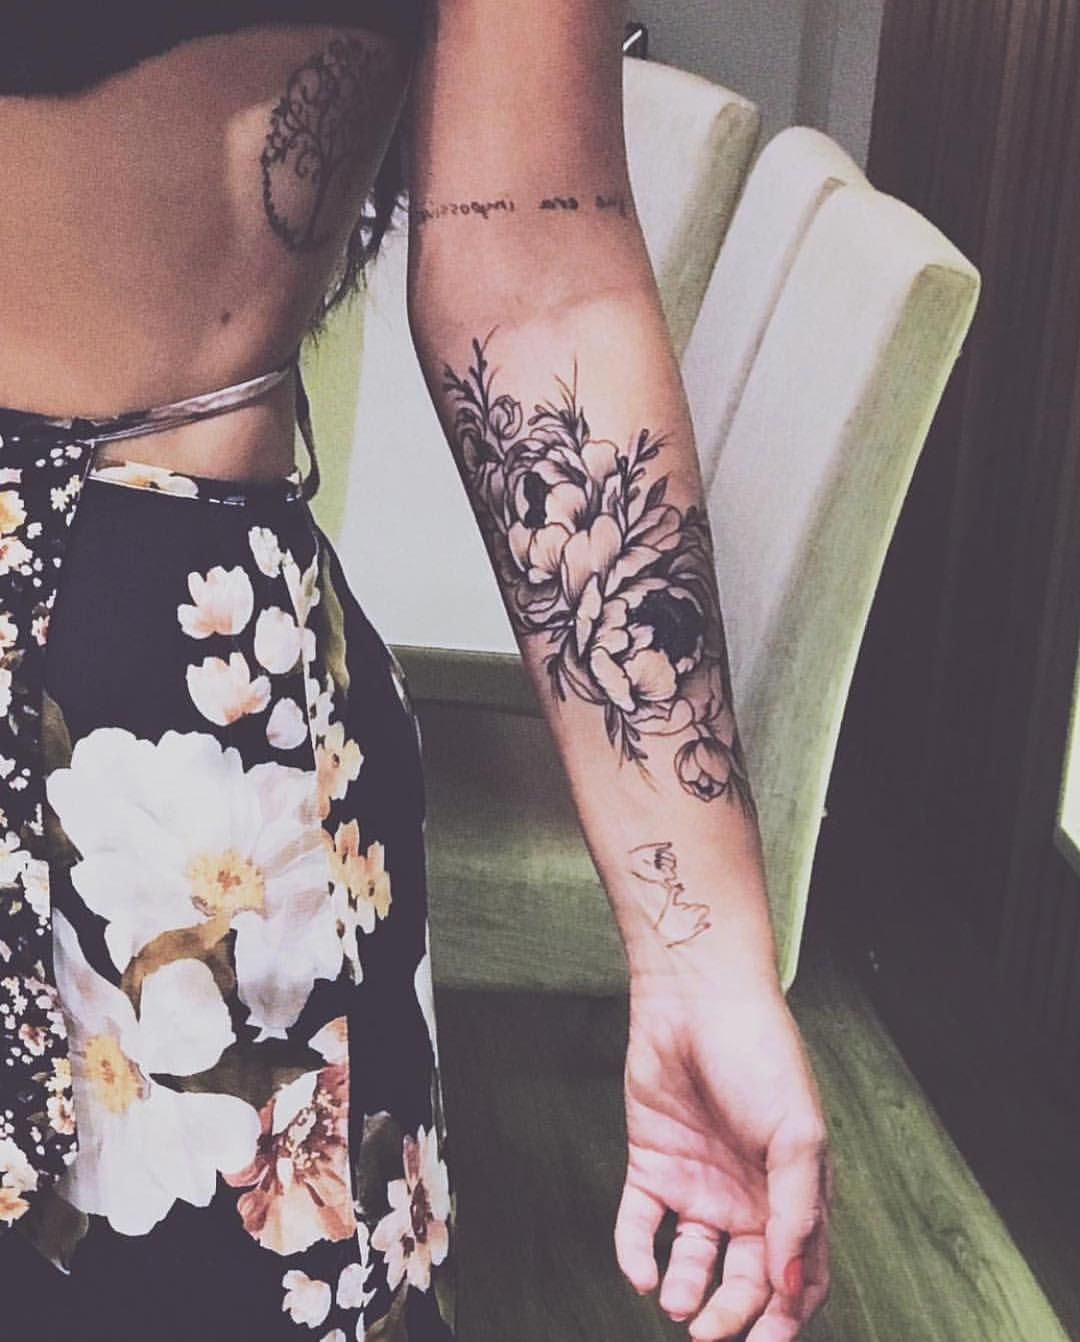 Pin By Carly Lupo On Tats Tattoos Forearm Tattoos Flower